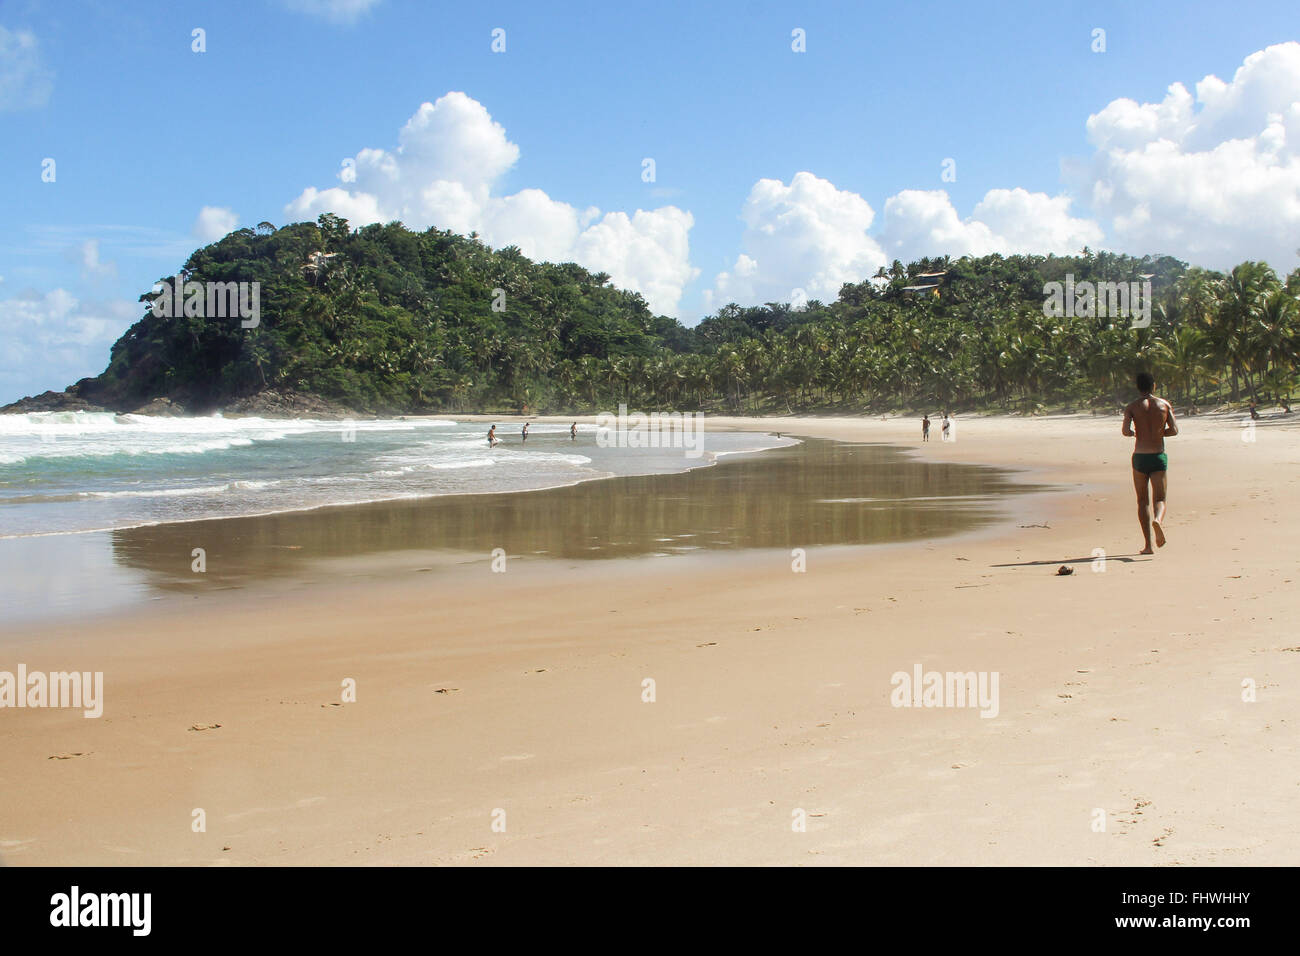 Bather exercising on the edge of Prainha - Stock Image